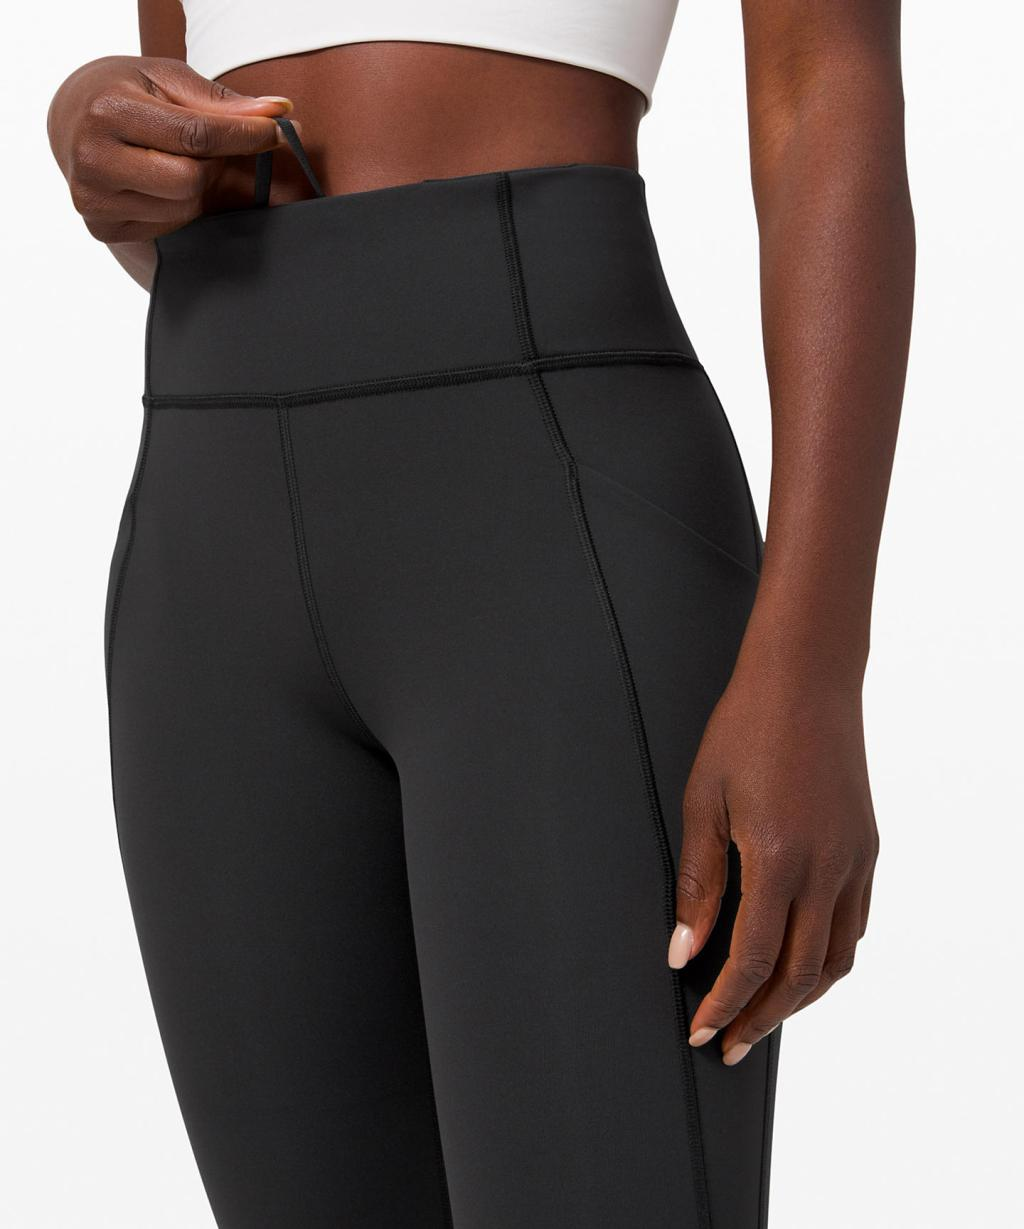 Lululemon time to sweat reviews